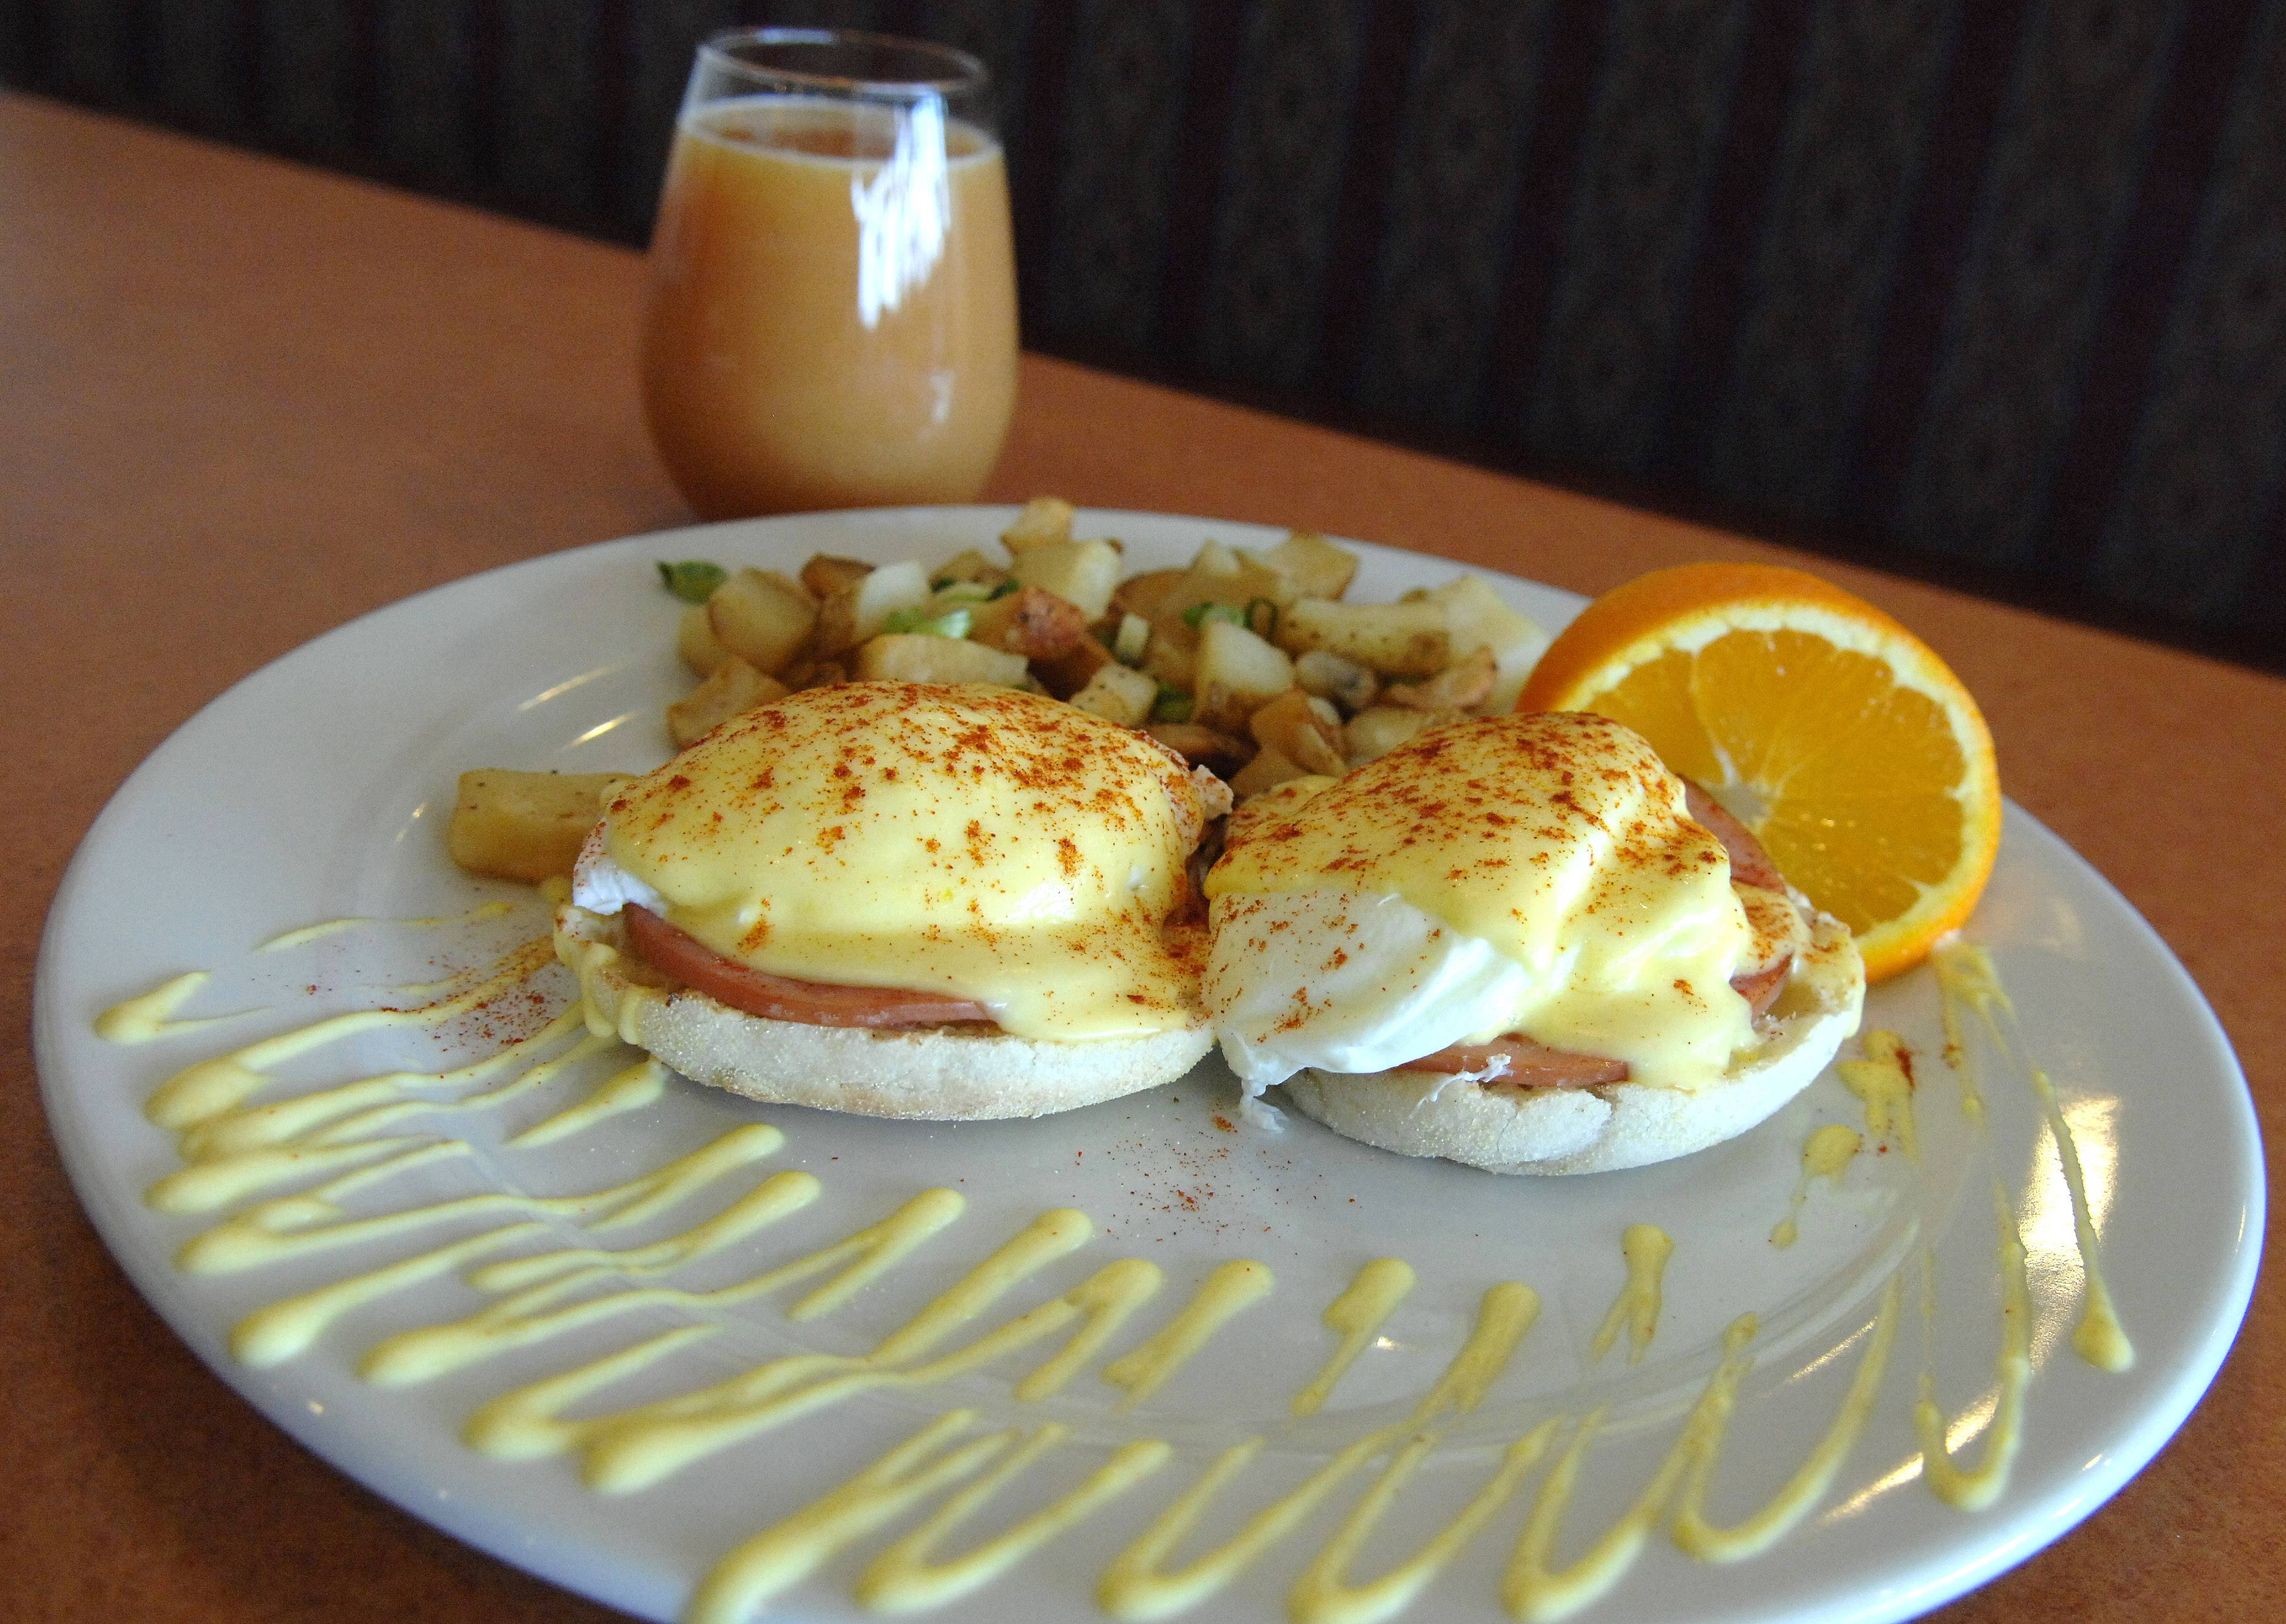 You can't go wrong with an order of eggs Benedict from Sweet Berry Cafe in South Elgin.